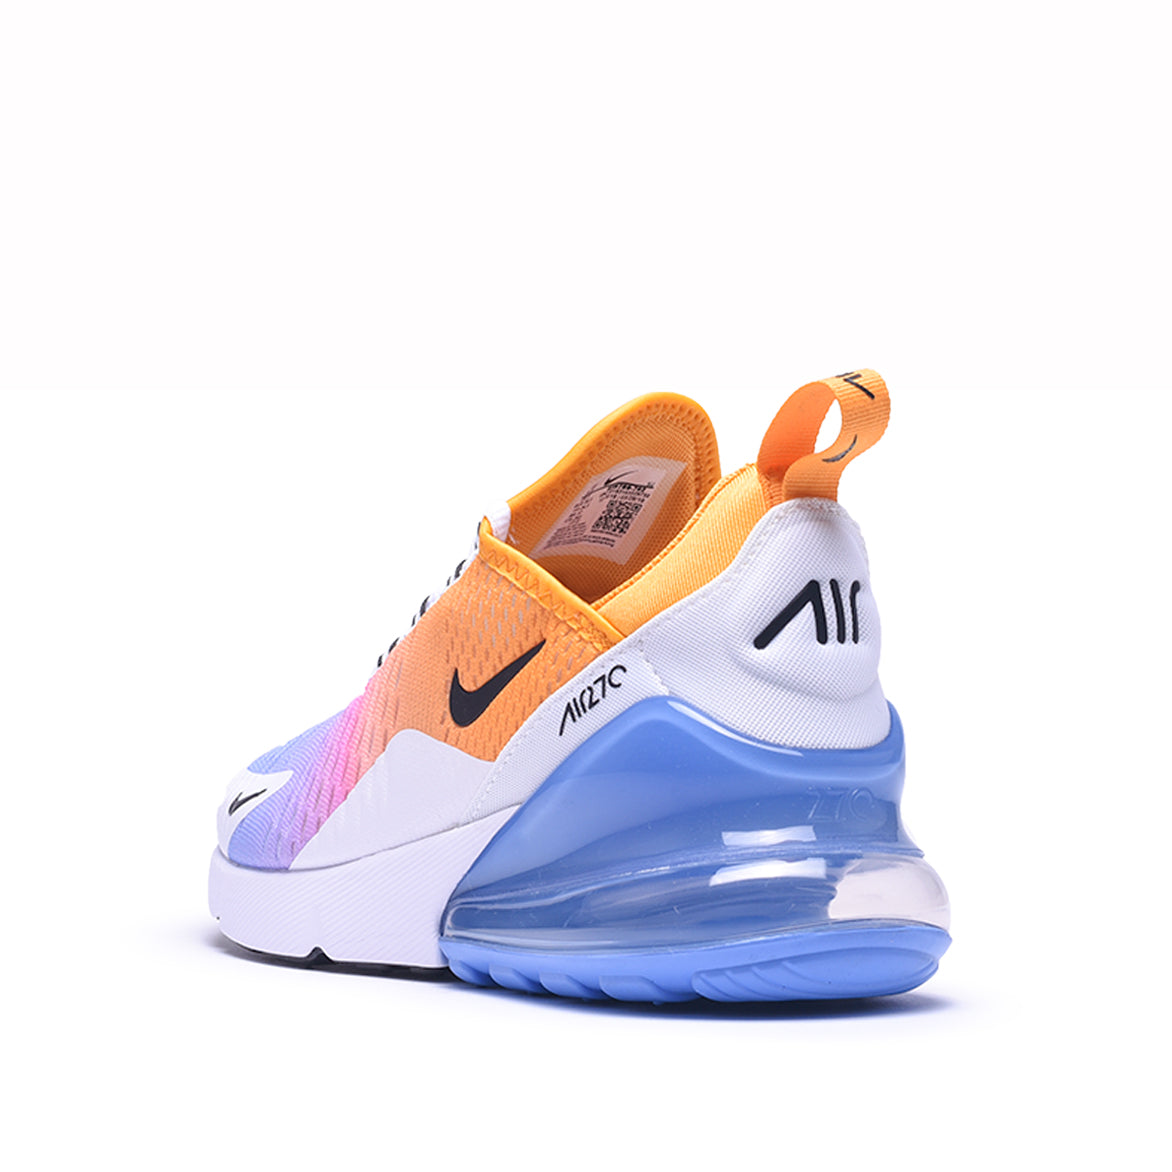 WMNS AIR MAX 270 - UNIVERSITY GOLD  / BLACK